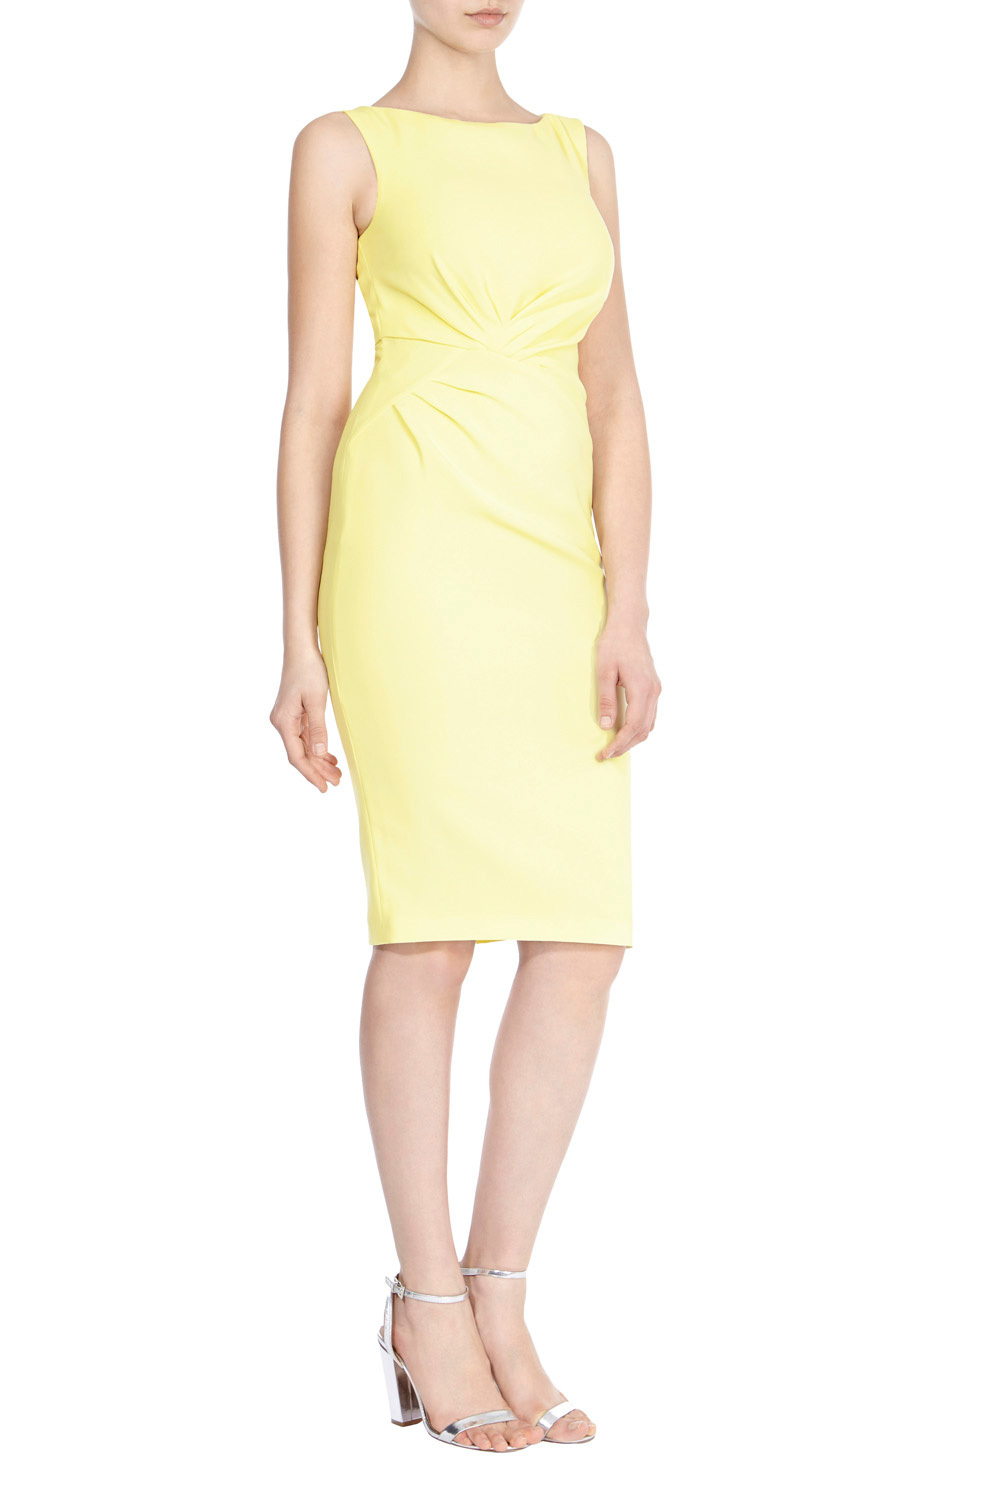 Jamillia Crepe Dress - style: shift; fit: tailored/fitted; pattern: plain; sleeve style: sleeveless; predominant colour: primrose yellow; occasions: evening; length: on the knee; neckline: crew; sleeve length: sleeveless; texture group: crepes; pattern type: fabric; fibres: viscose/rayon - mix; season: s/s 2016; wardrobe: event